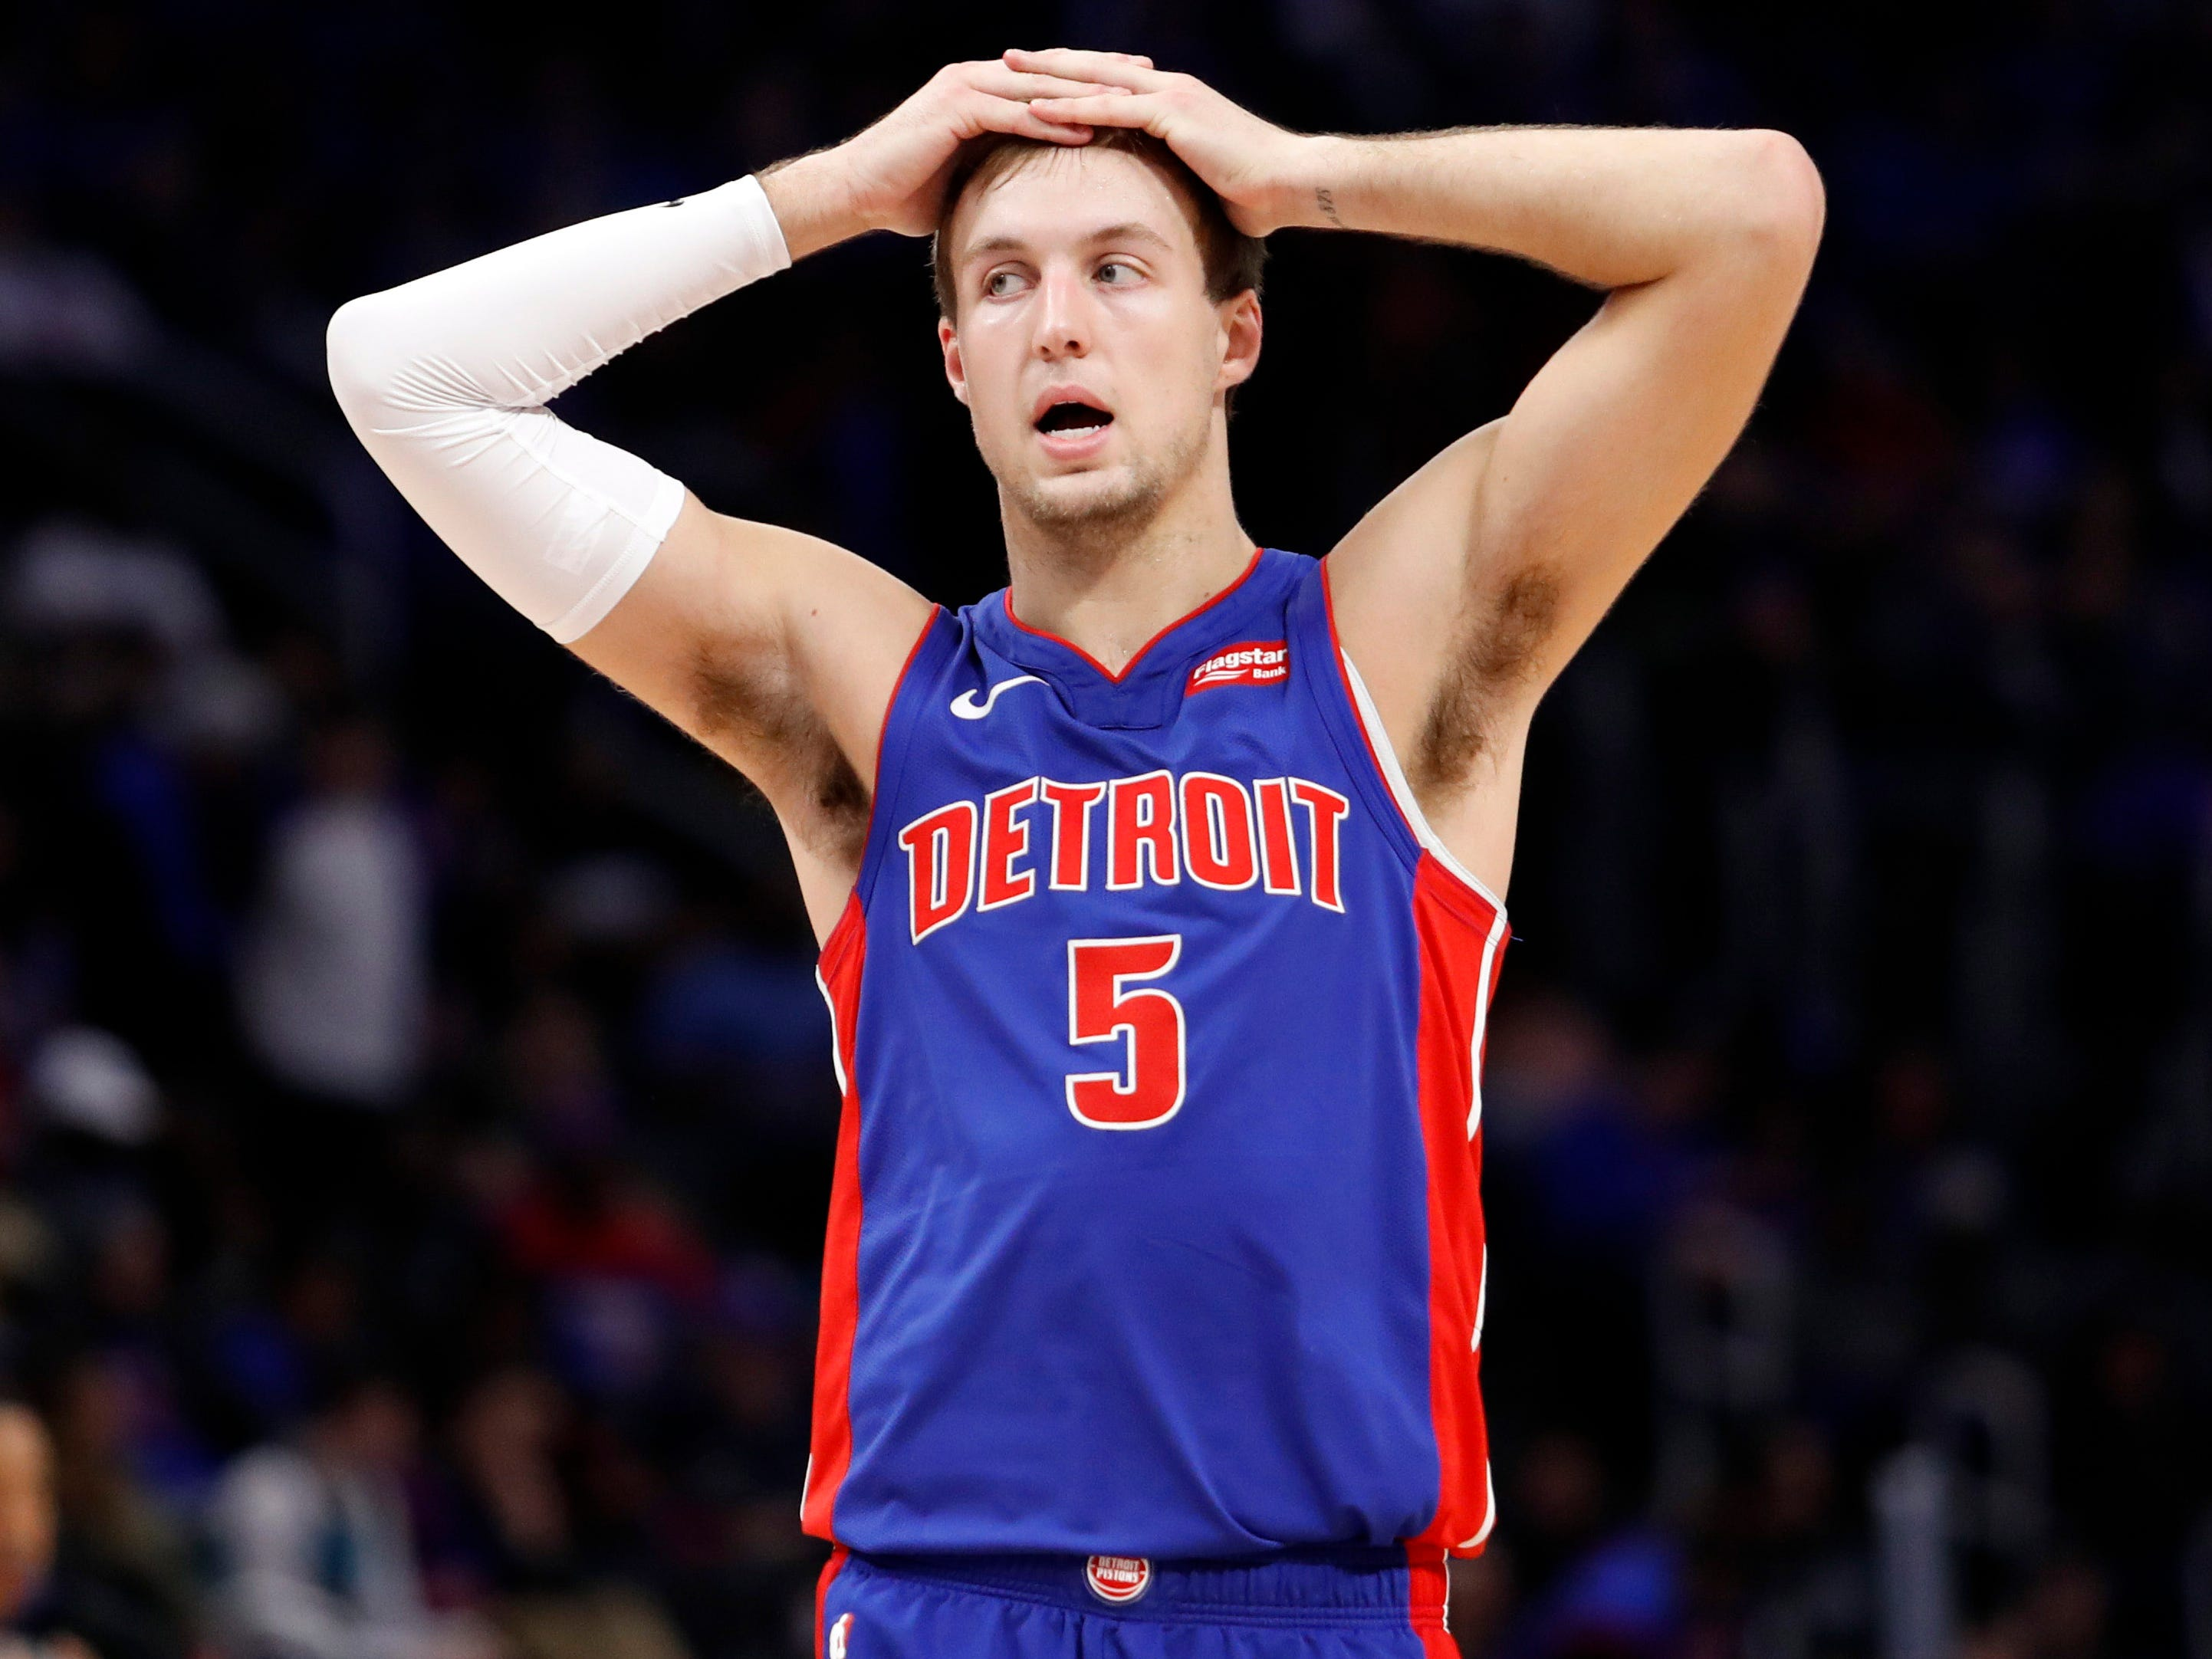 April 20: A resigned Luke Kennard during the fourth quarter of the Pistons' loss to the Bucks in Game 3.